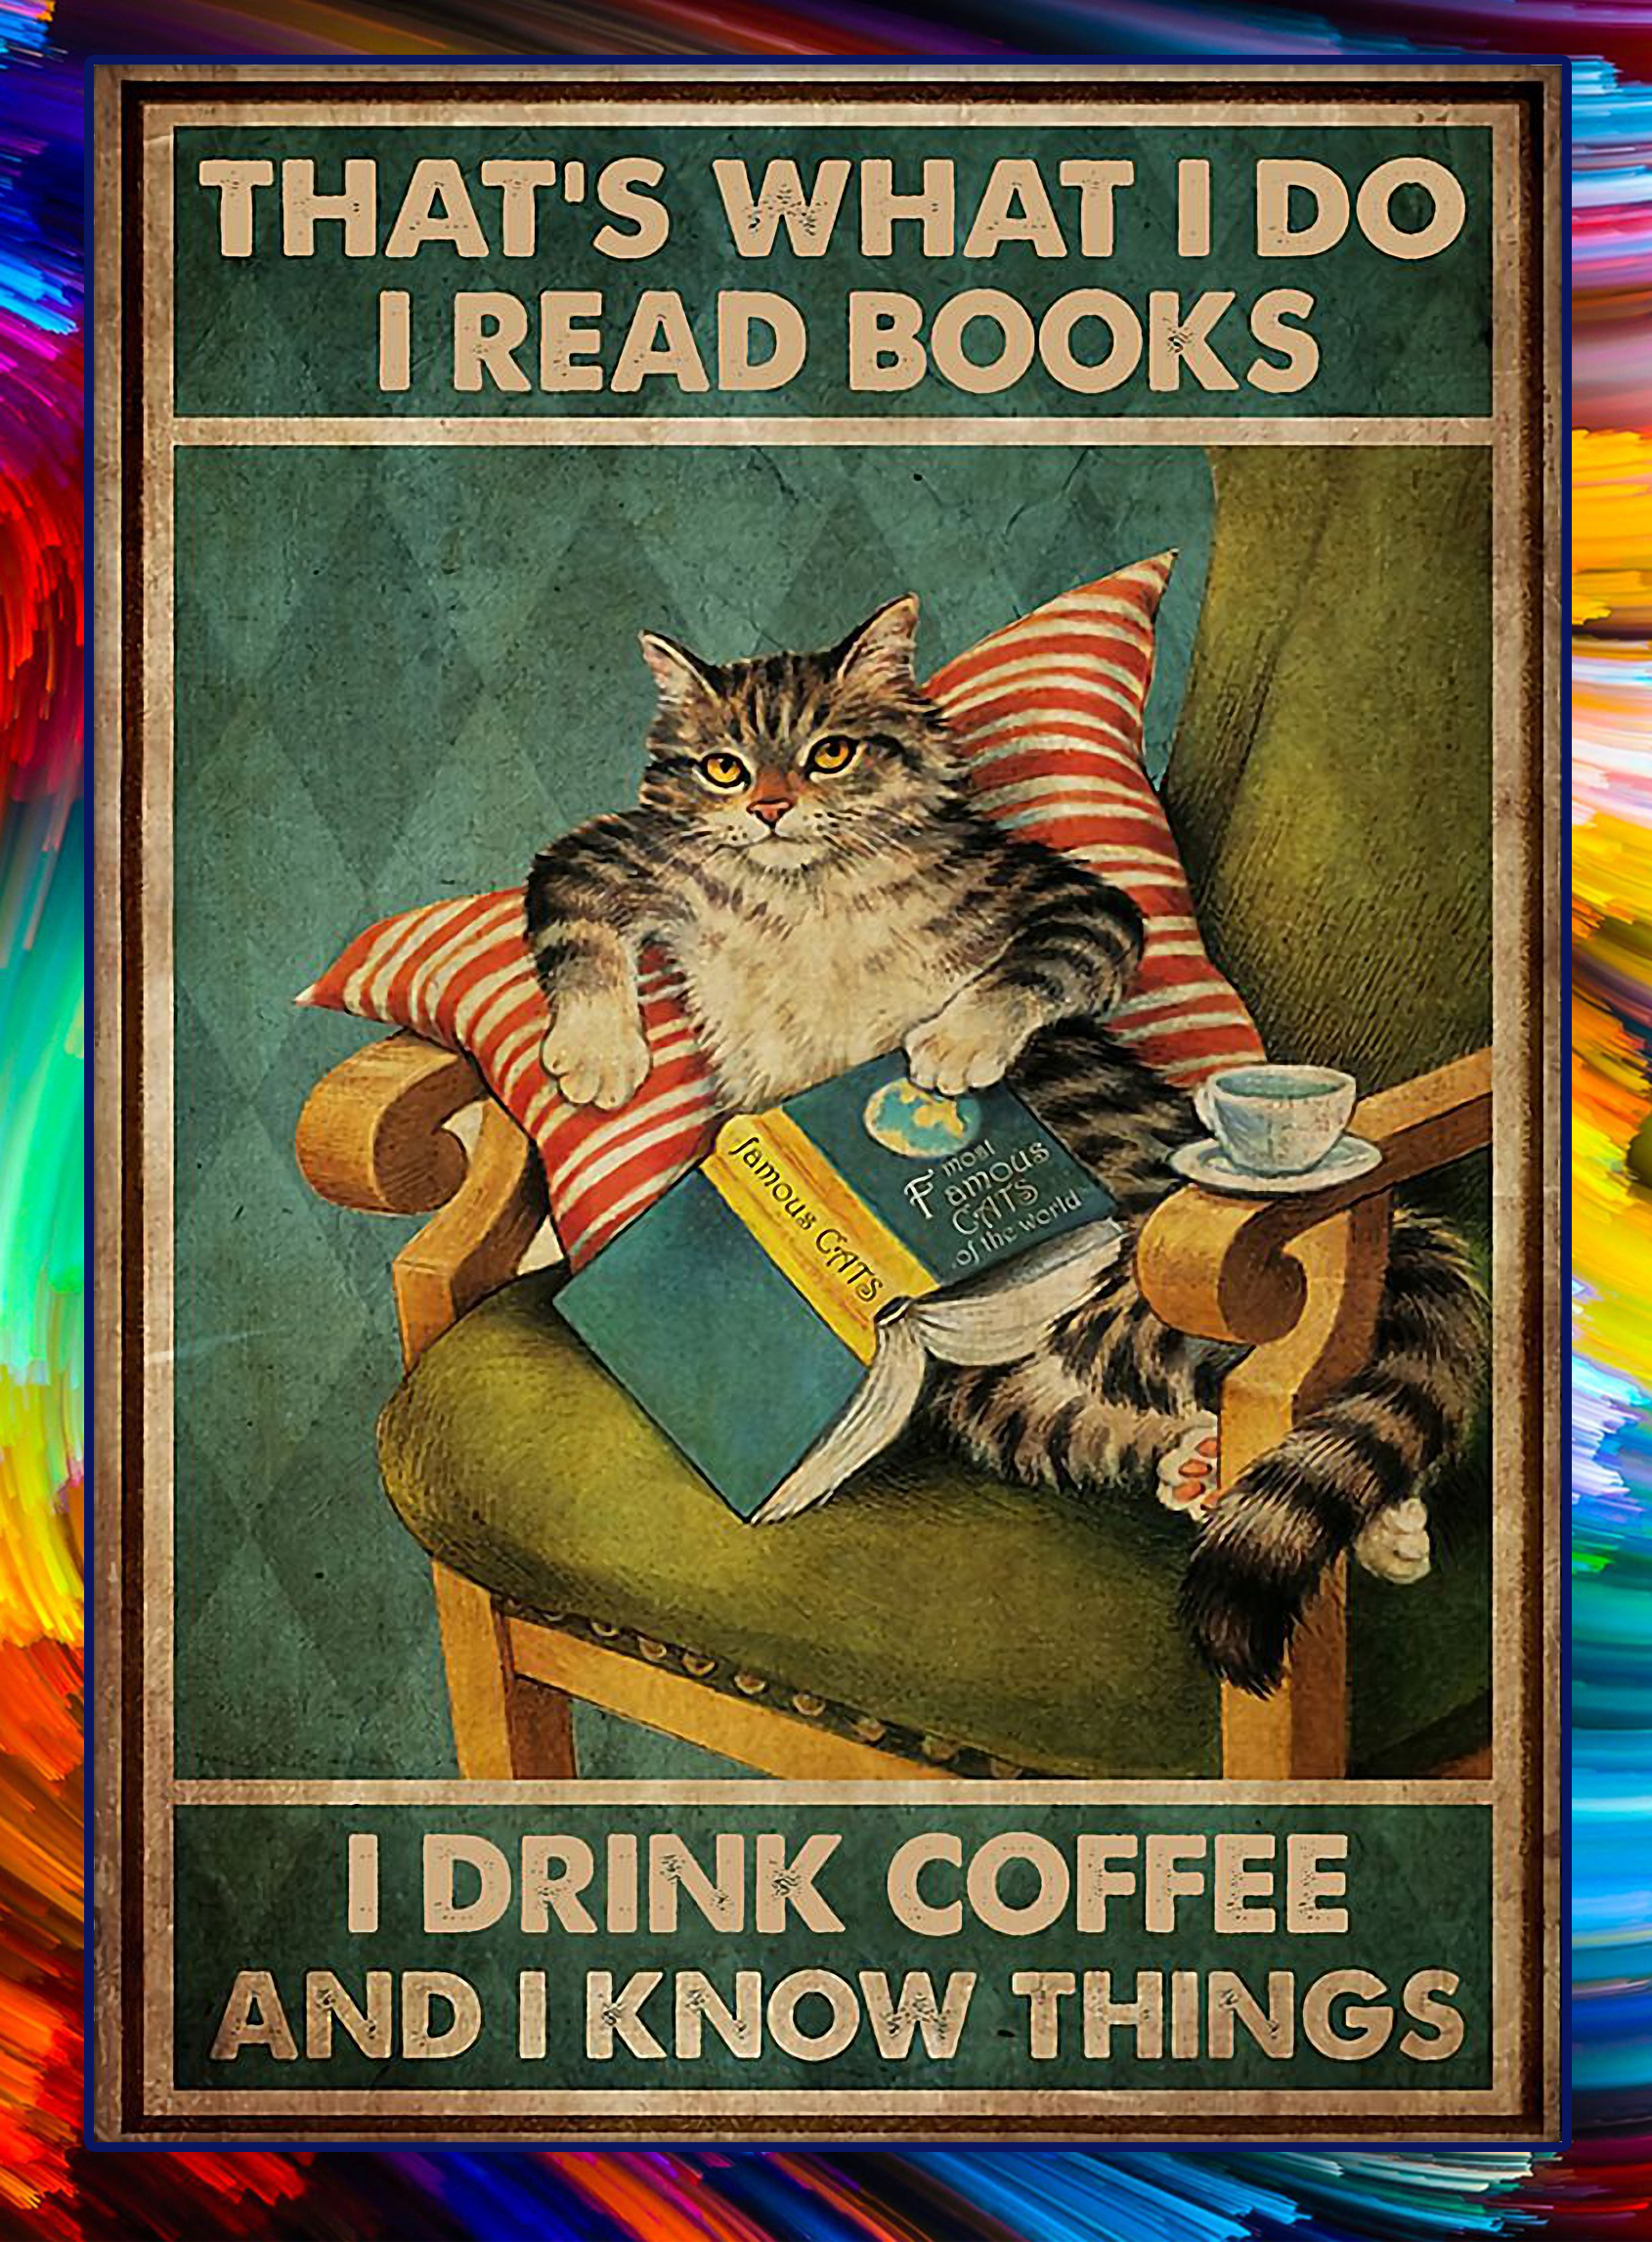 Cat that's what I do I read books I drink coffee and I know things poster